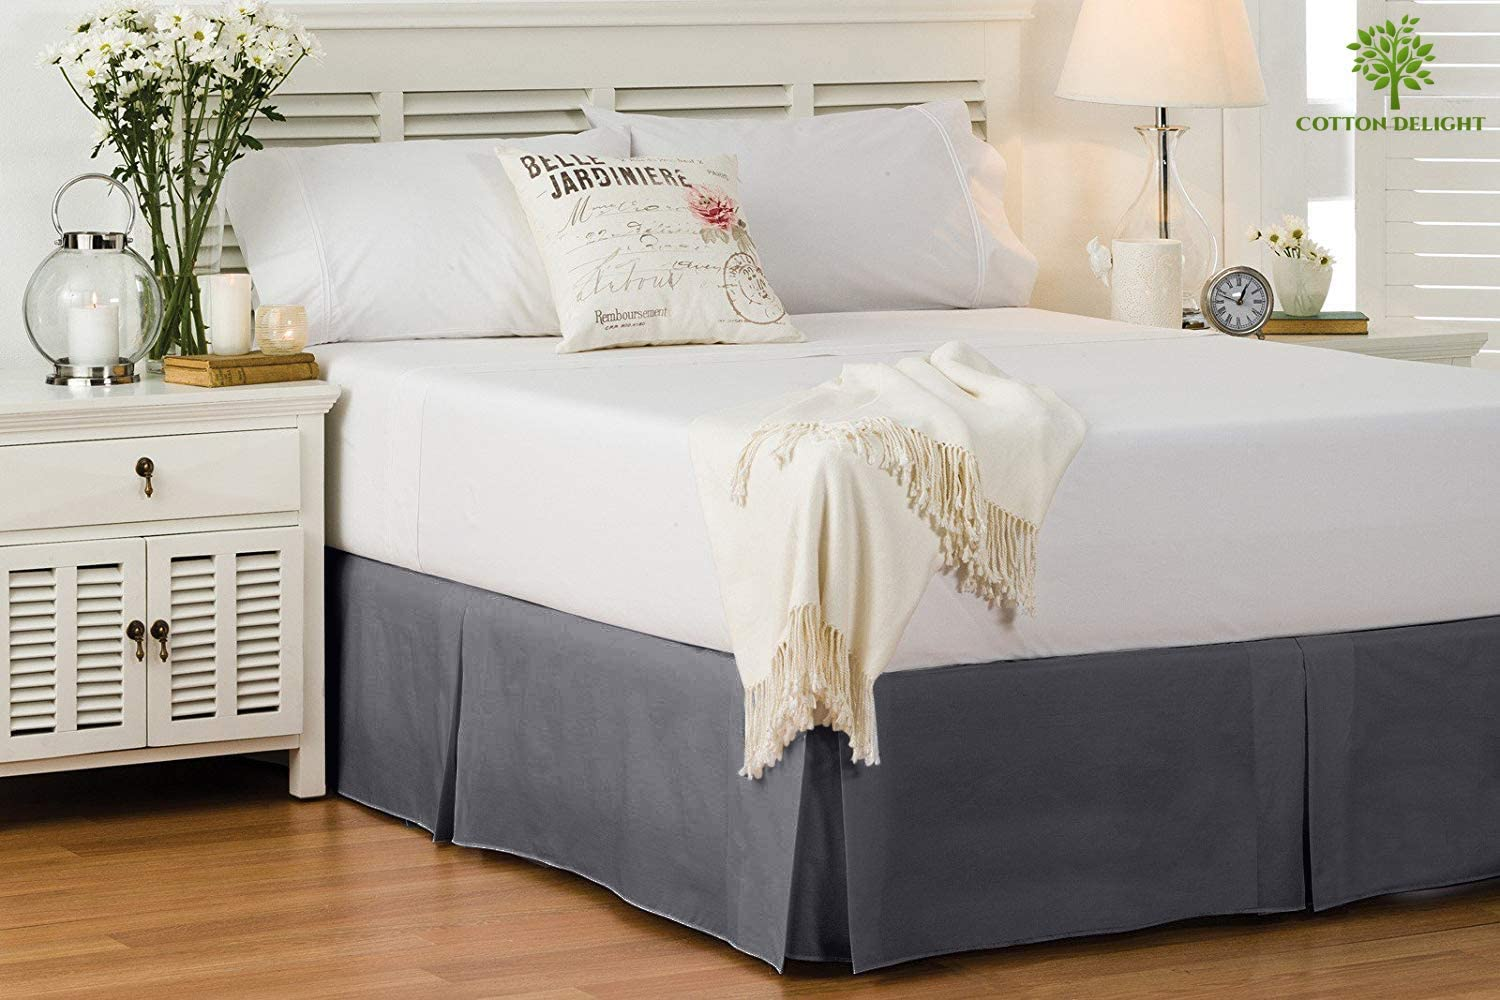 Cotton Delight All stores are sold Bed Skirt Queen Size Thre Natural 100% New sales 800